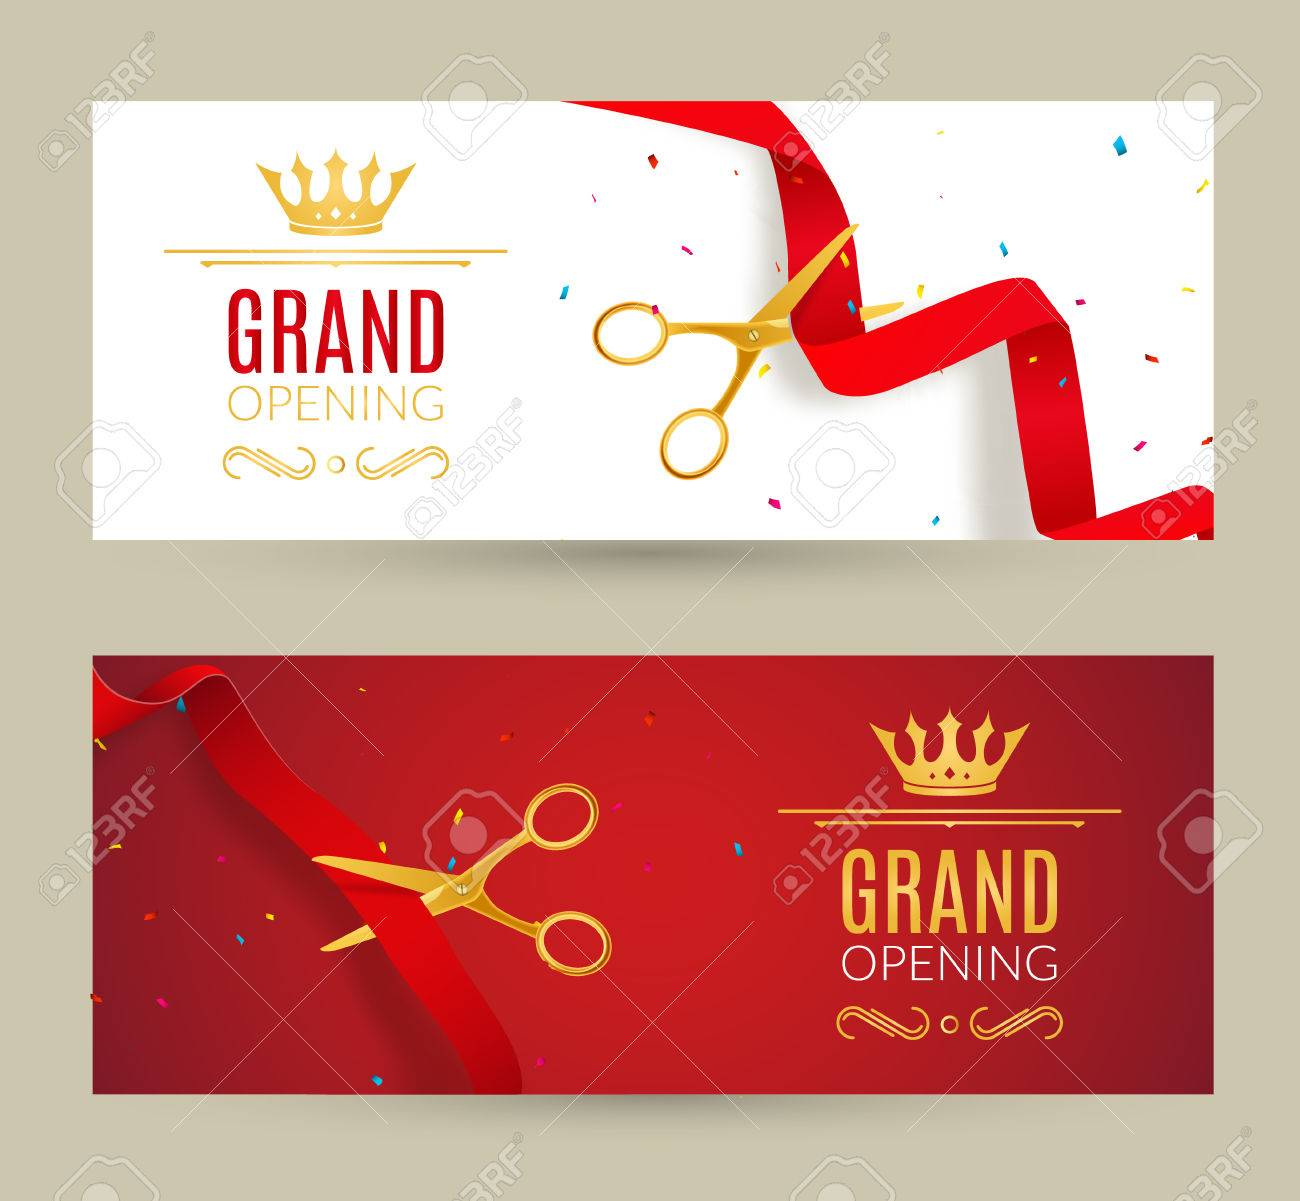 Grand opening invitation banner red ribbon cut ceremony event grand opening invitation banner red ribbon cut ceremony event grand opening celebration card stopboris Image collections